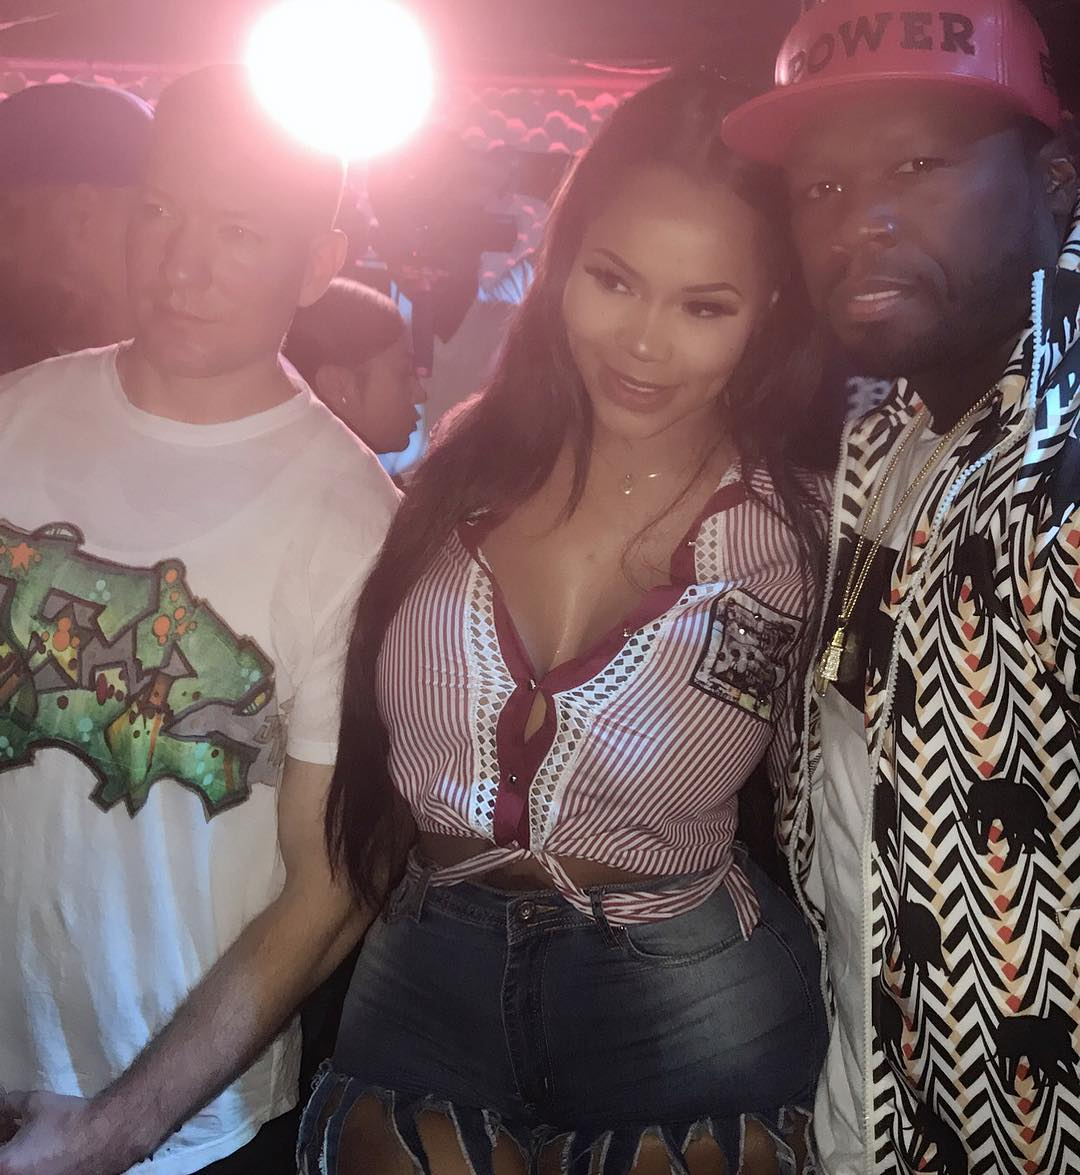 Look On 50 Cent As Dellishis Rocks His World (2)